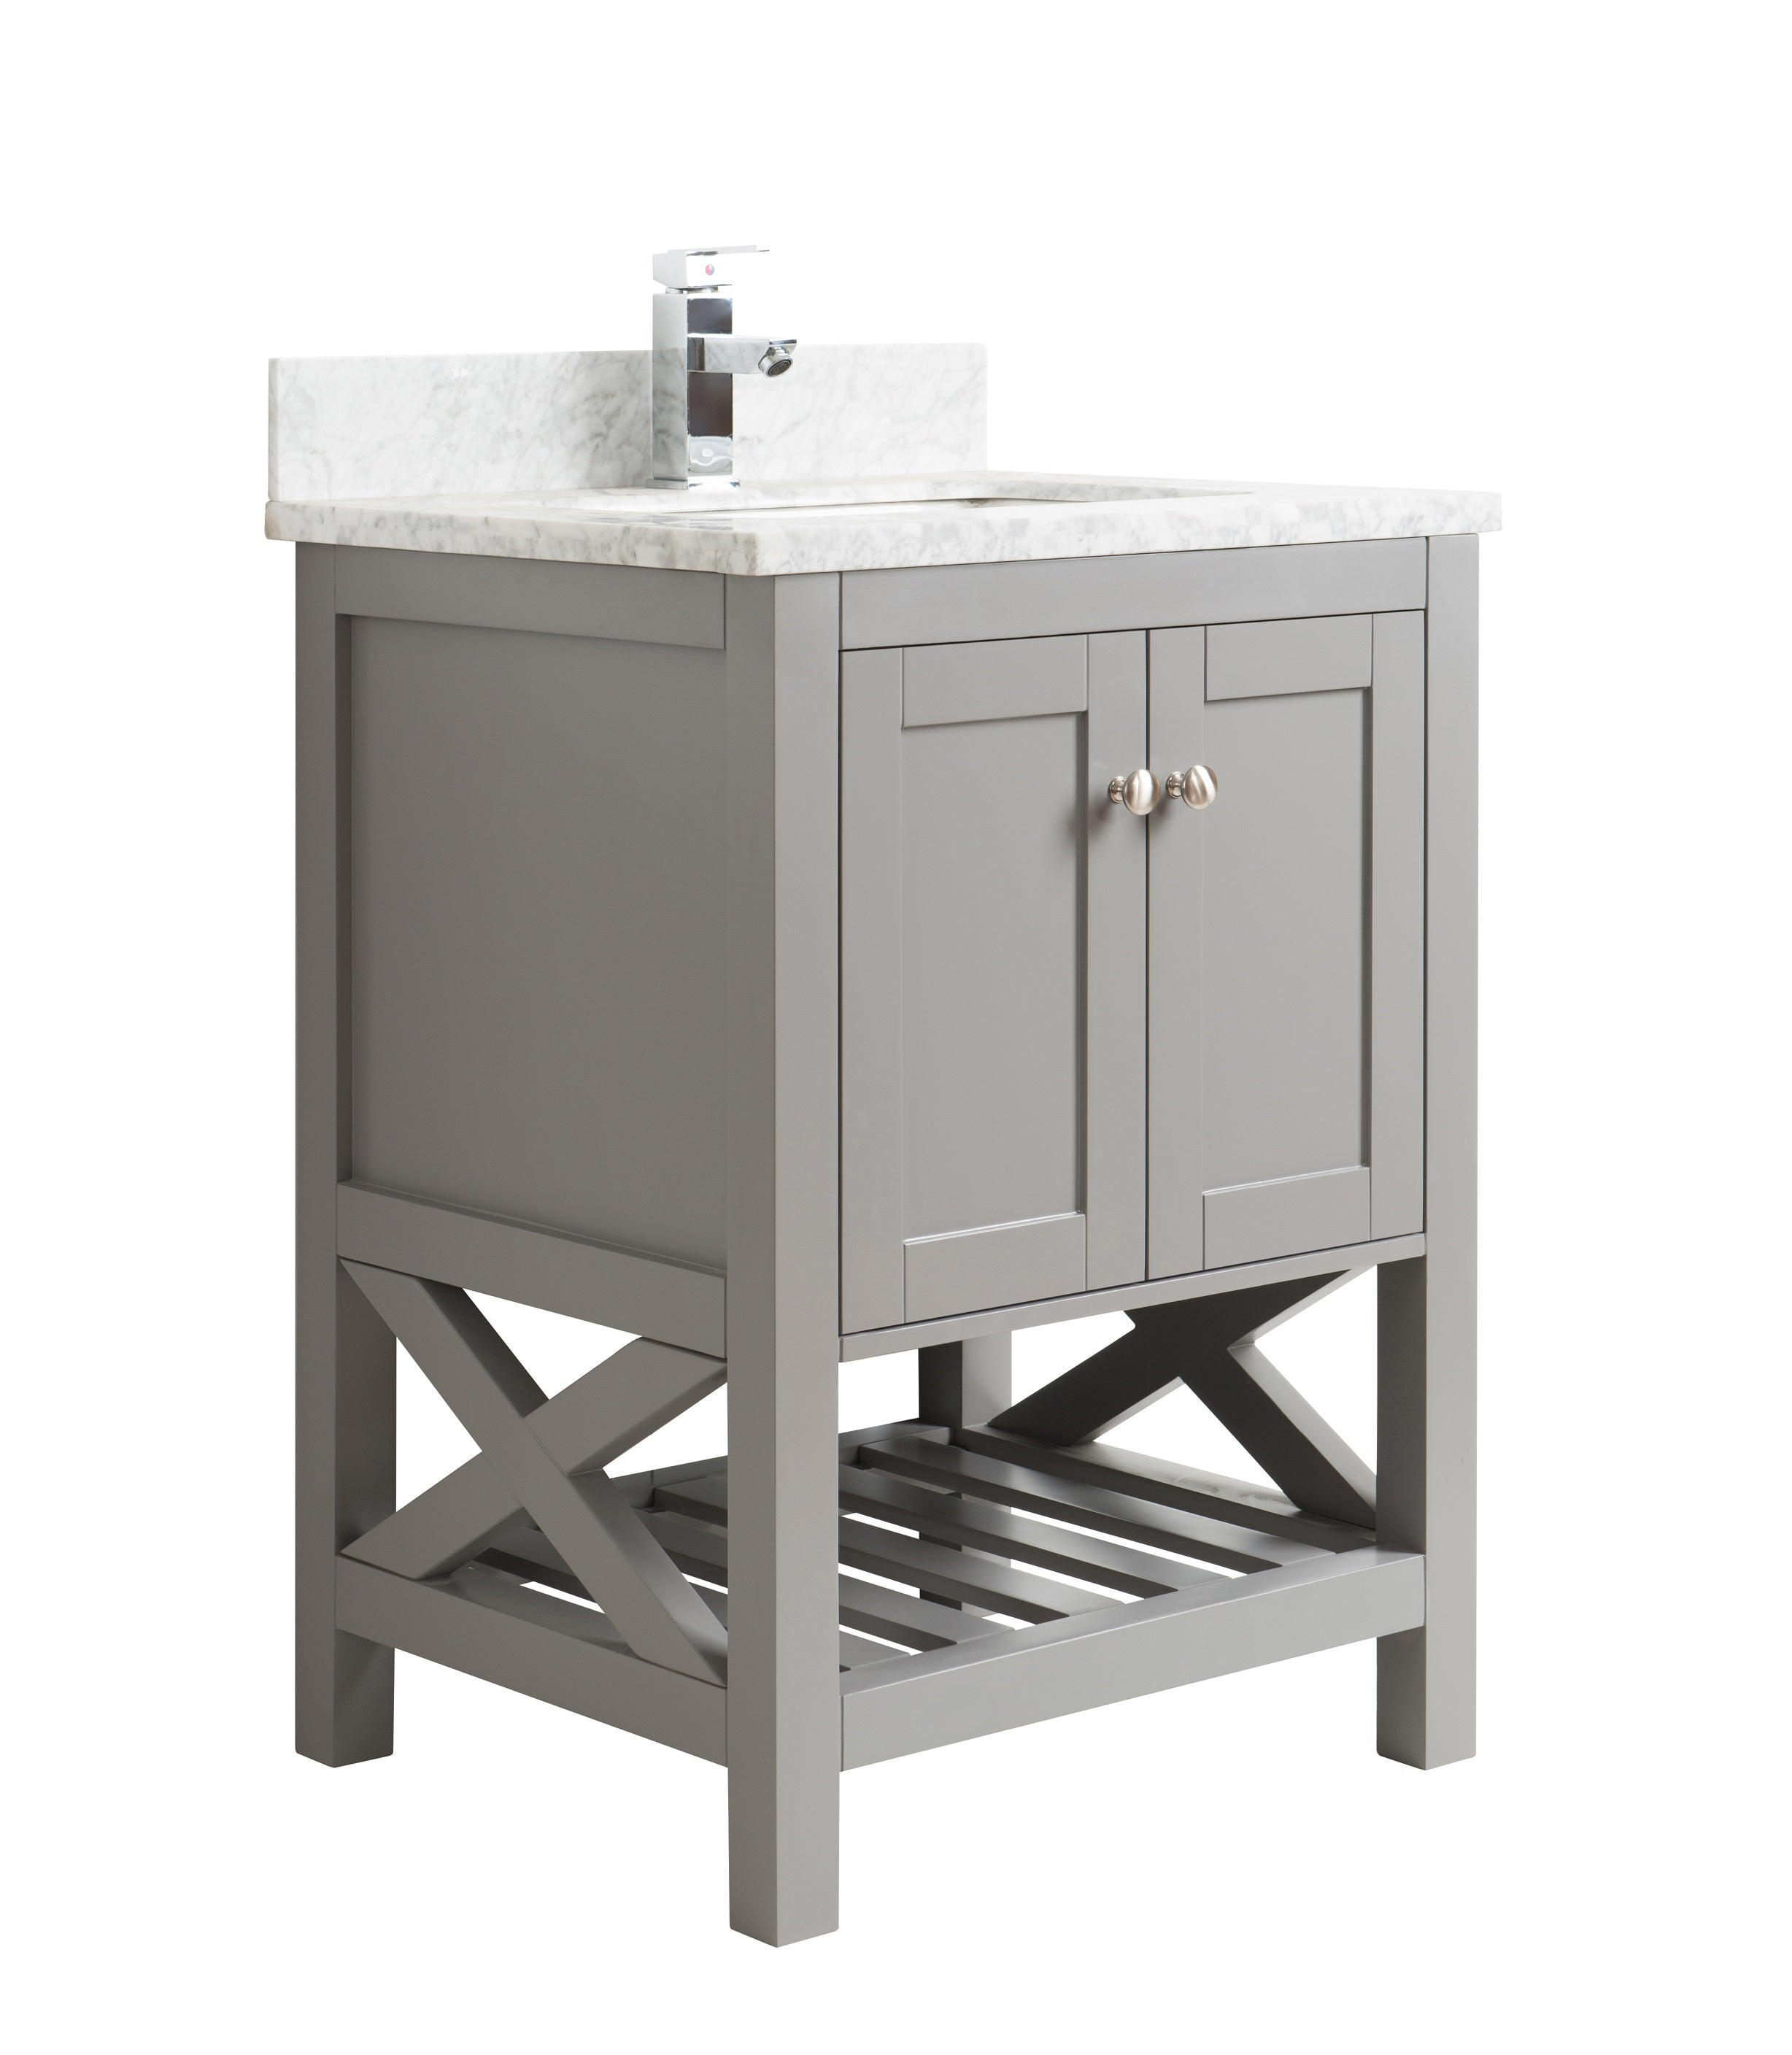 Admirable 24 Taiya Bathroom Vanity In Grey Rock Download Free Architecture Designs Ogrambritishbridgeorg